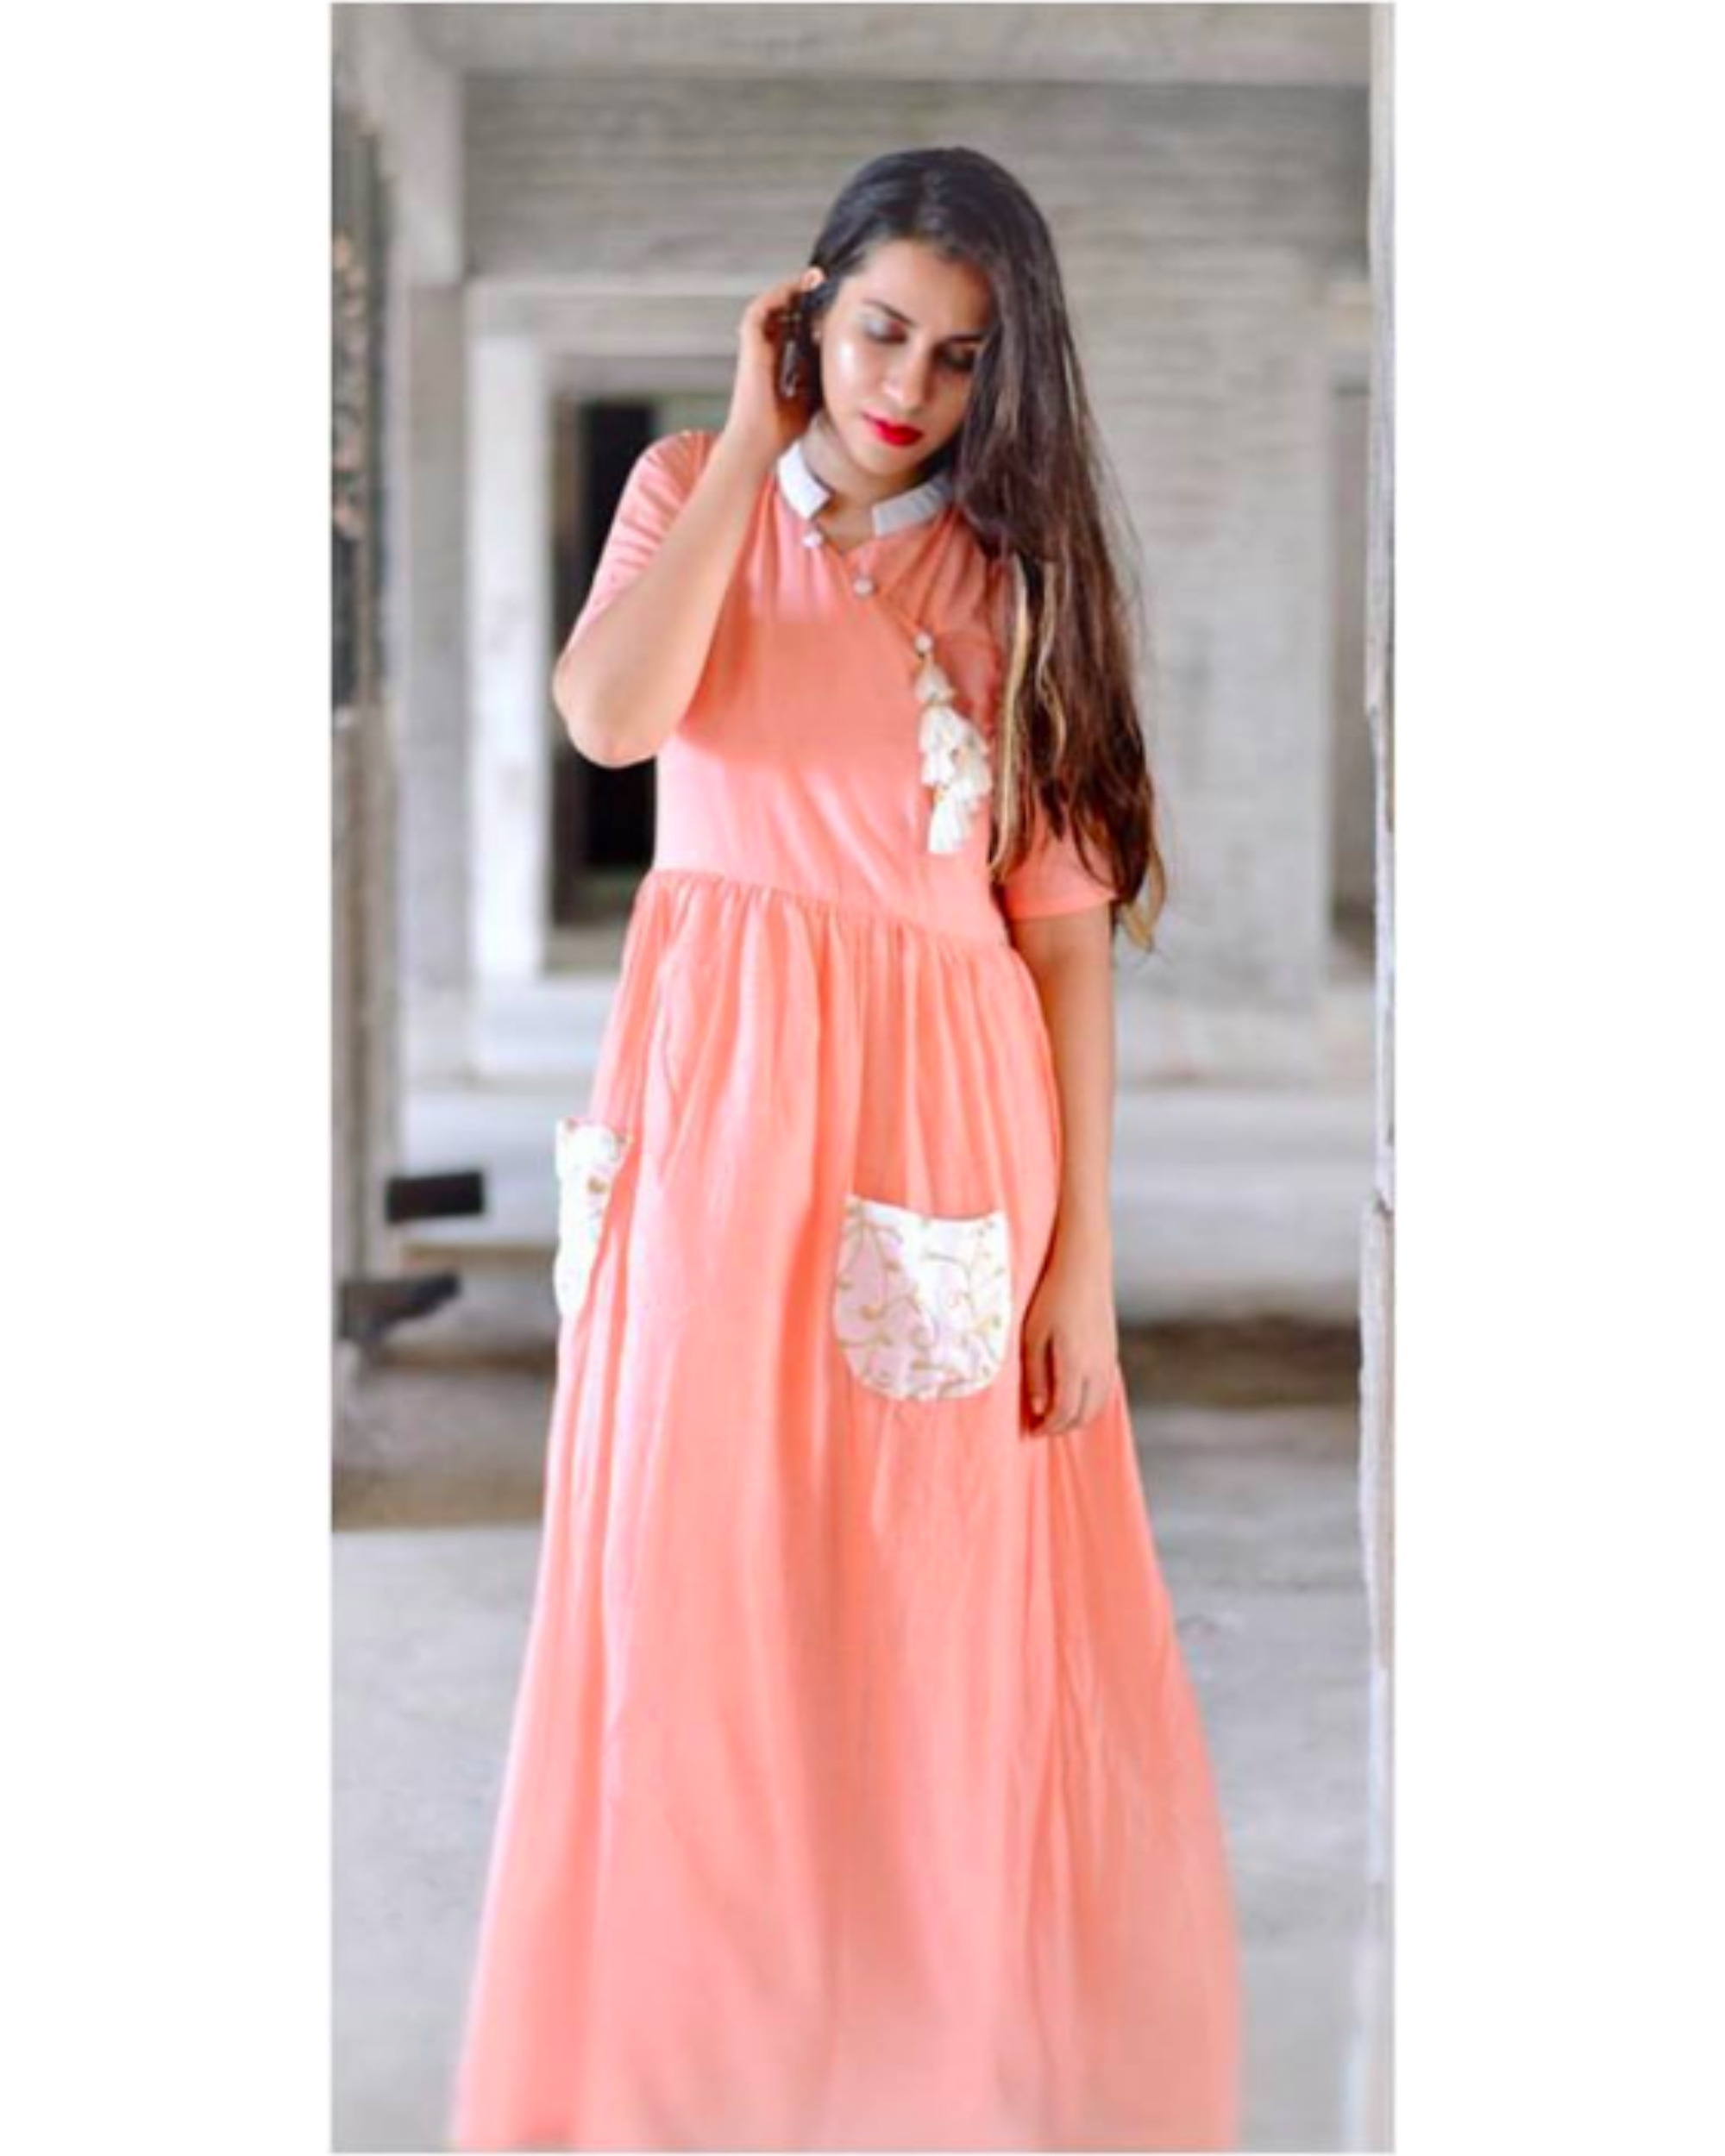 Peach tasseled dress